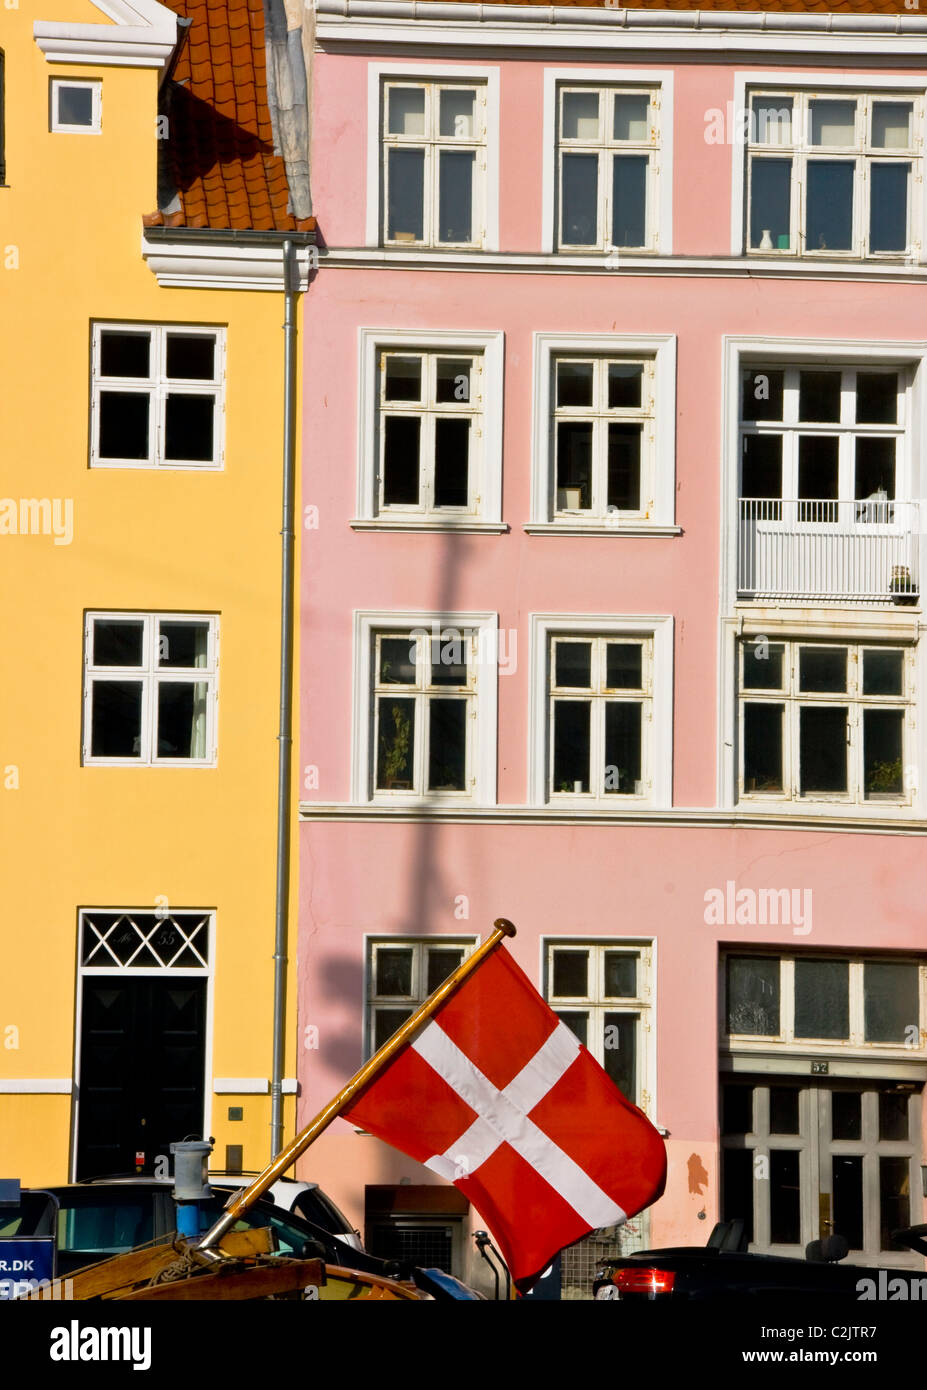 Danish flag flying and waterfront houses in Nyhavn (New harbor) Copenhagen Denmark Europe - Stock Image